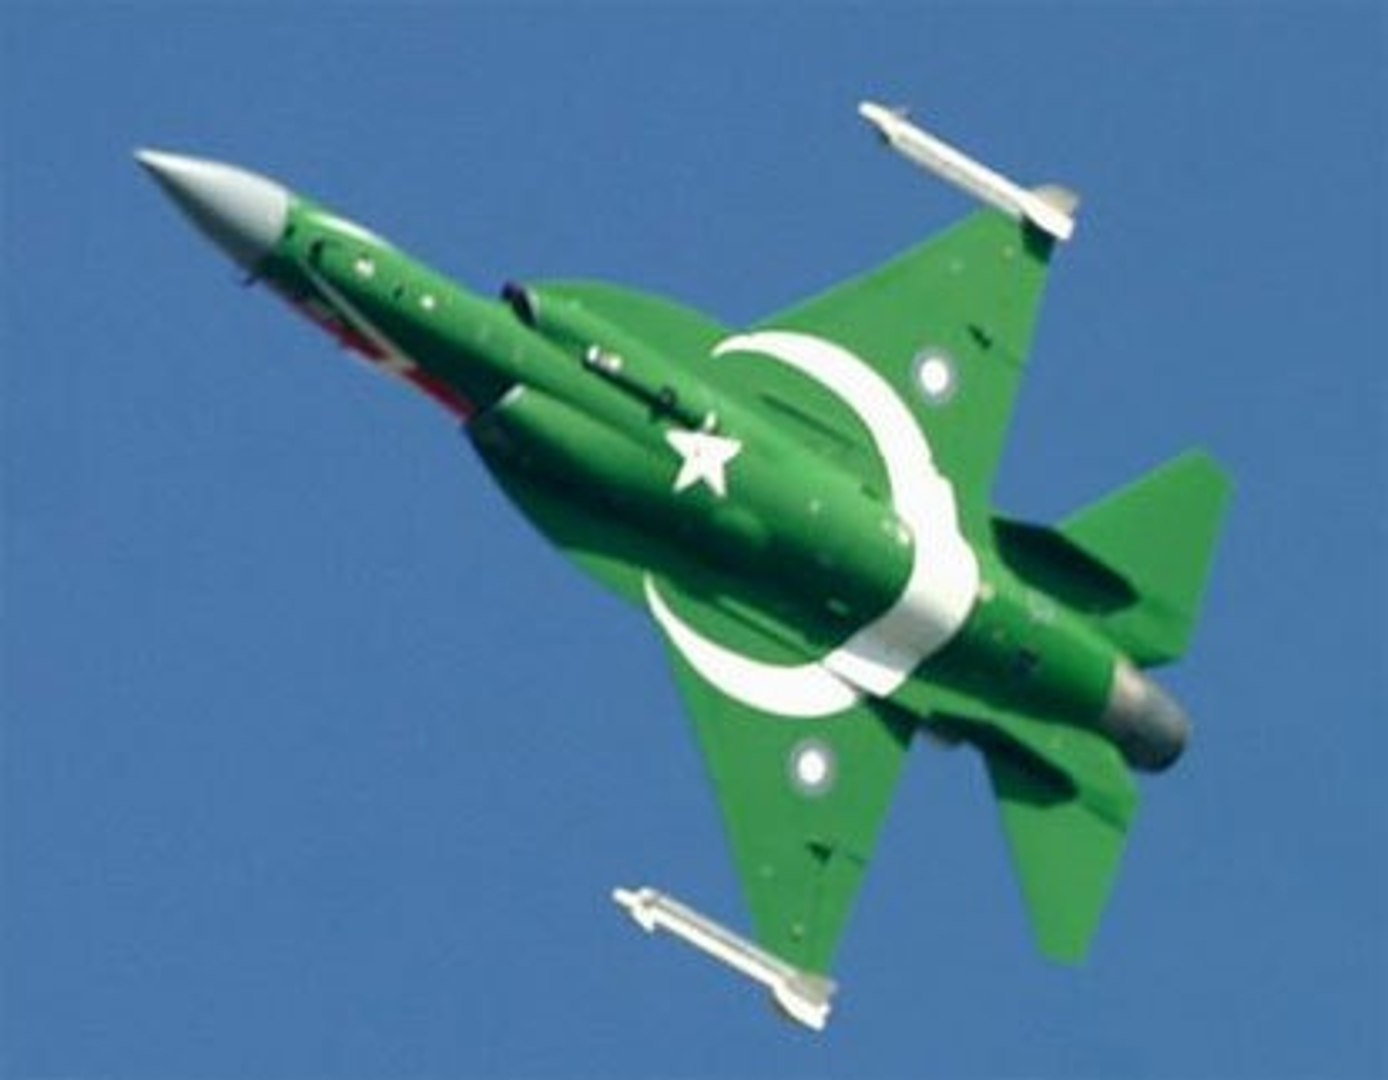 Amazing Vertical Climbs - JF-17, Mig-29, F-16, Eurofighter, Rafale, F-22 and F-35 Full HD